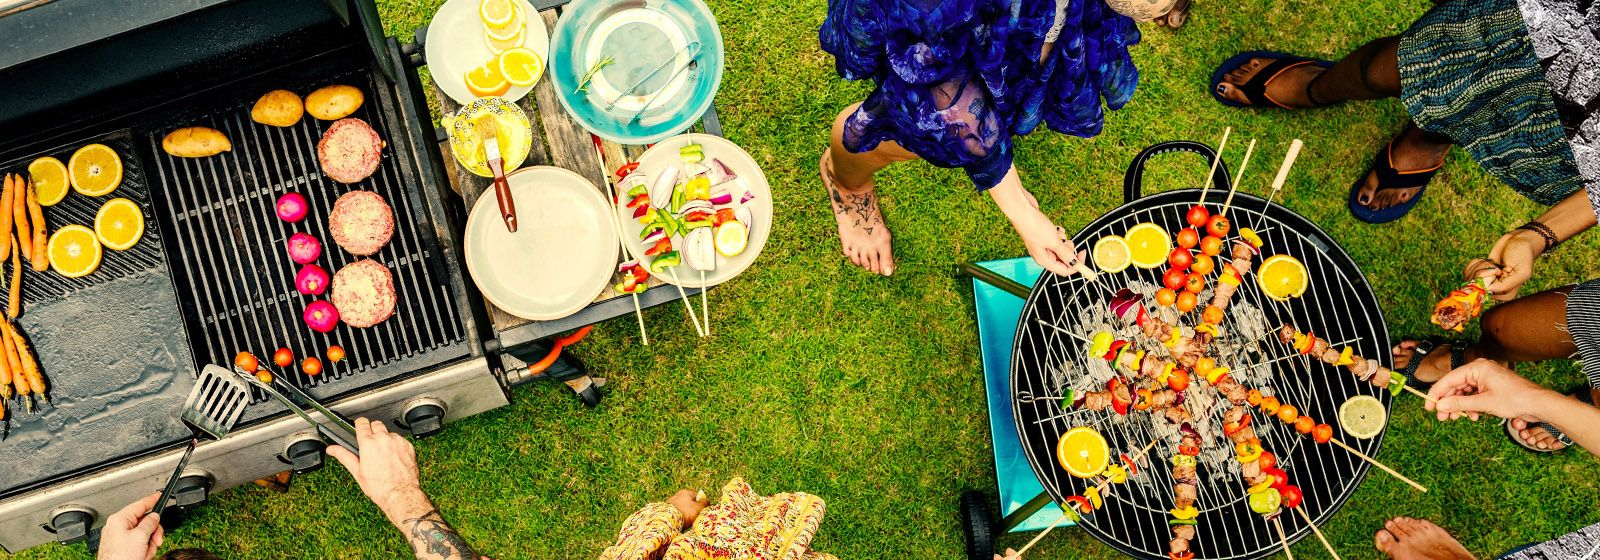 When you grill supper, you save on energy costs